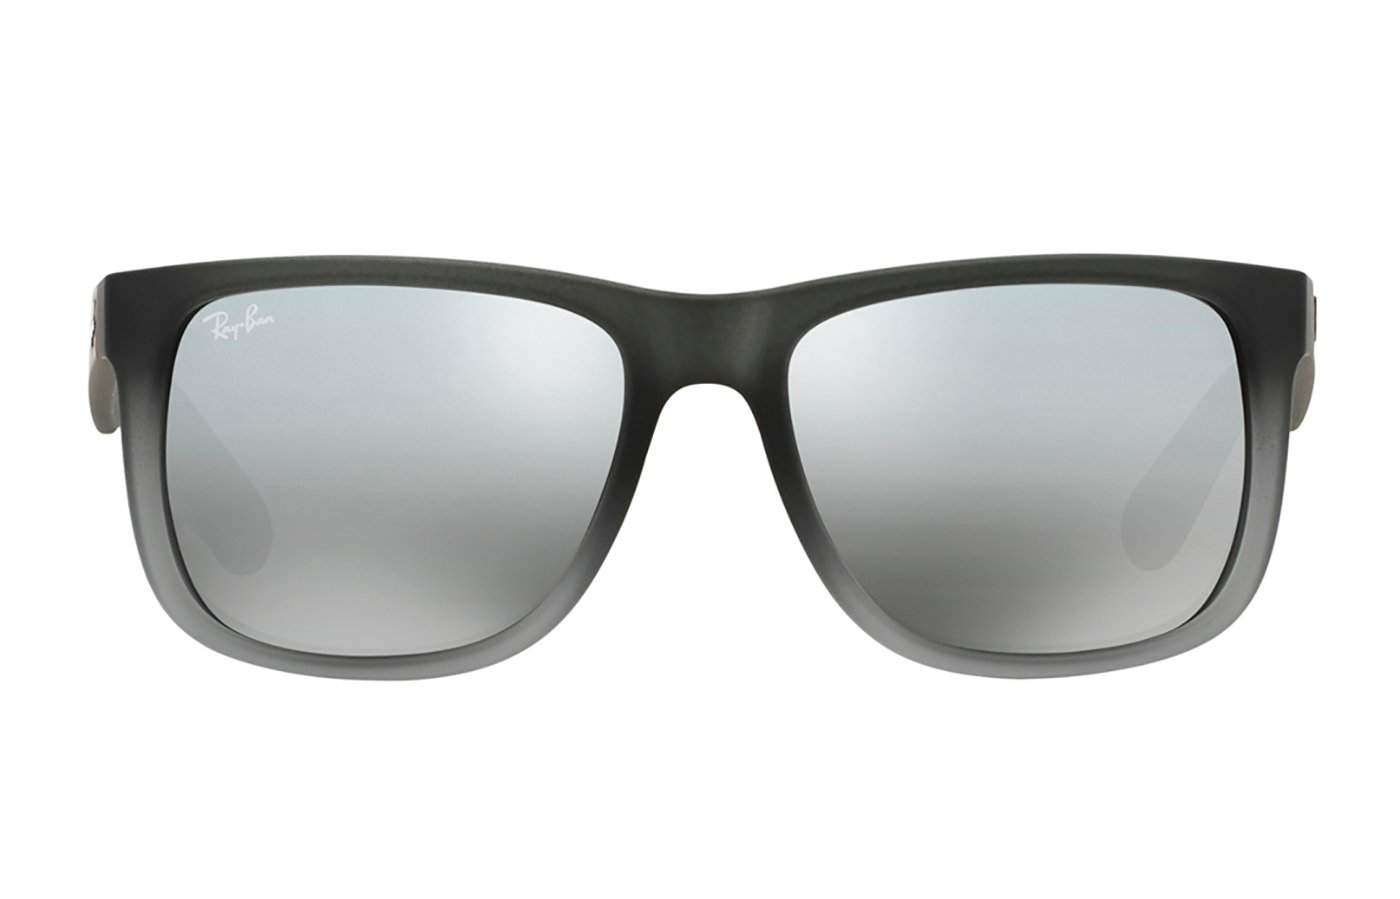 RAY-BAN JUSTIN 0RB4165 55 852/88 RUBBER GREY/GREY TRANSP.